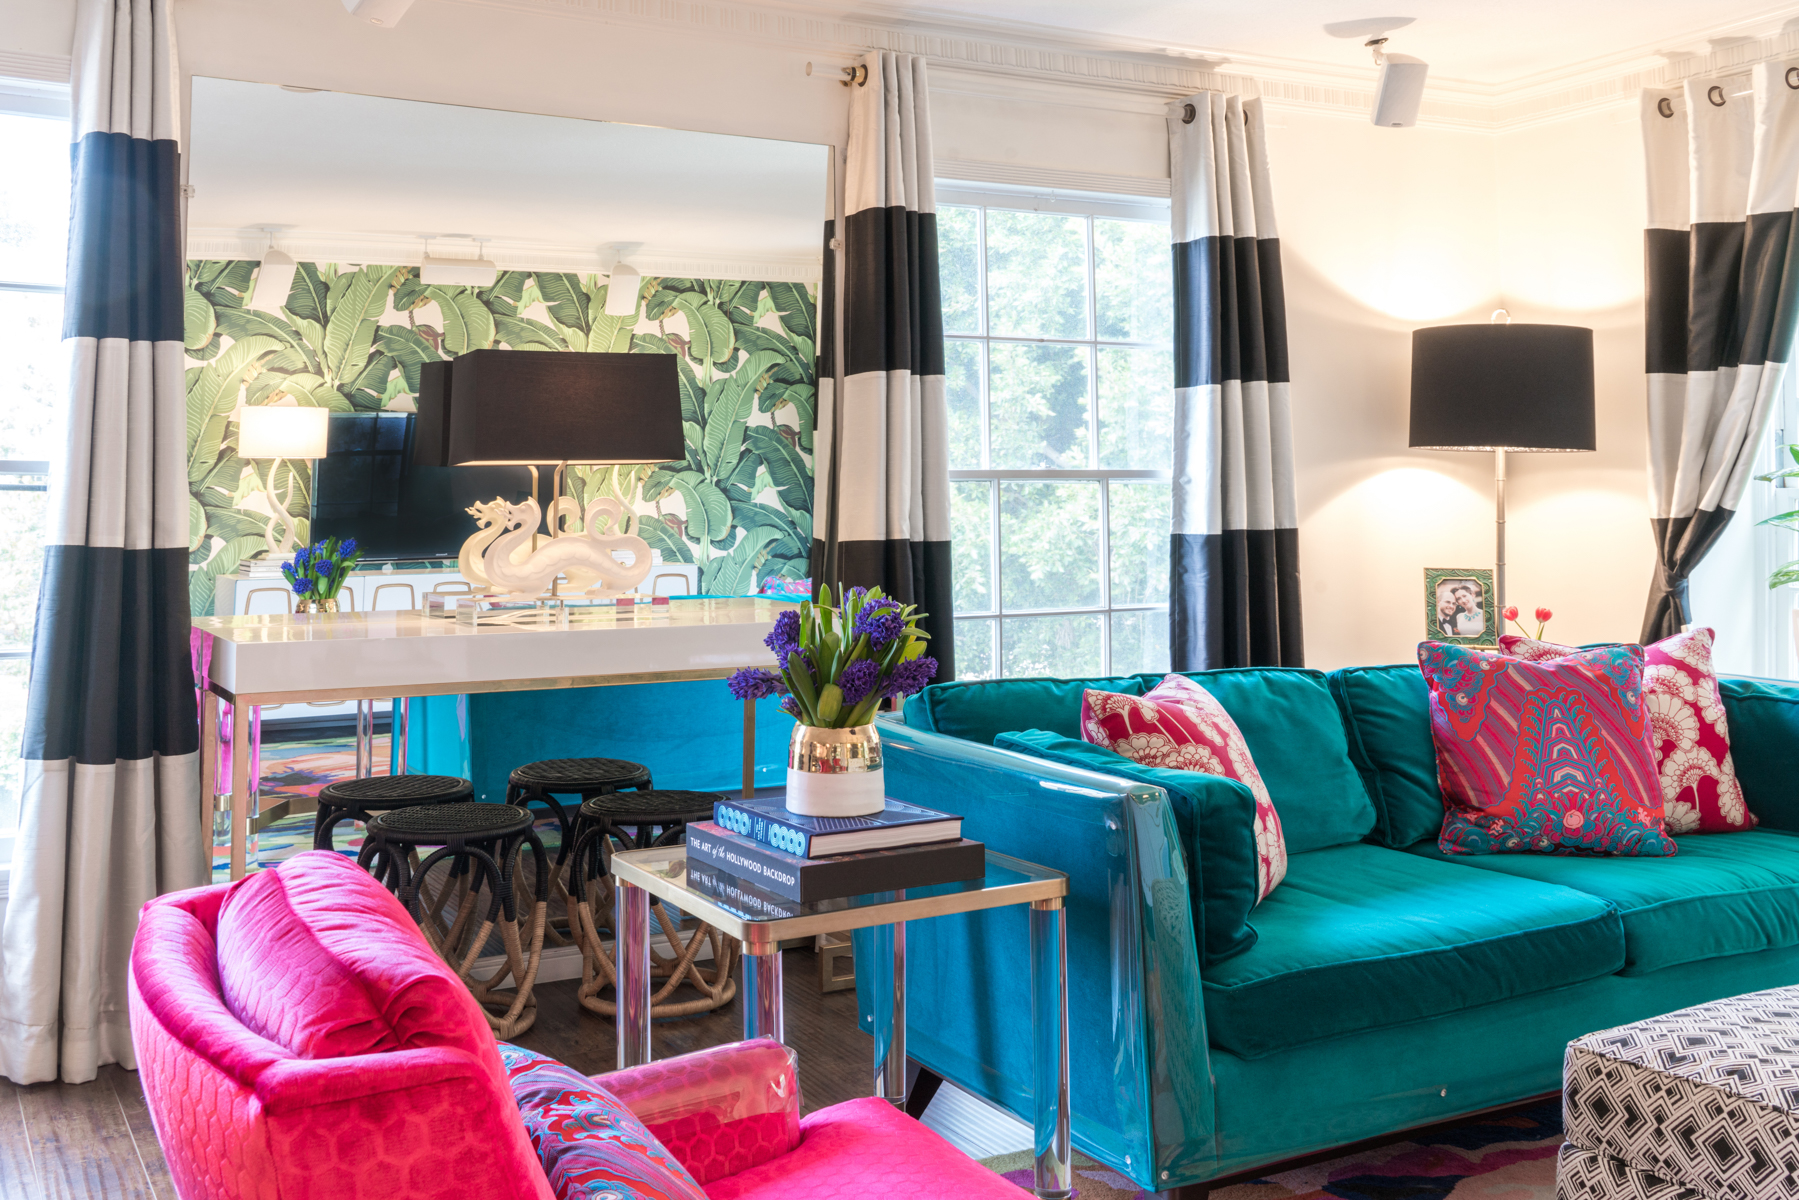 Our Disney-Crazy House Is on Apartment Therapy! - Disney Travel Babble